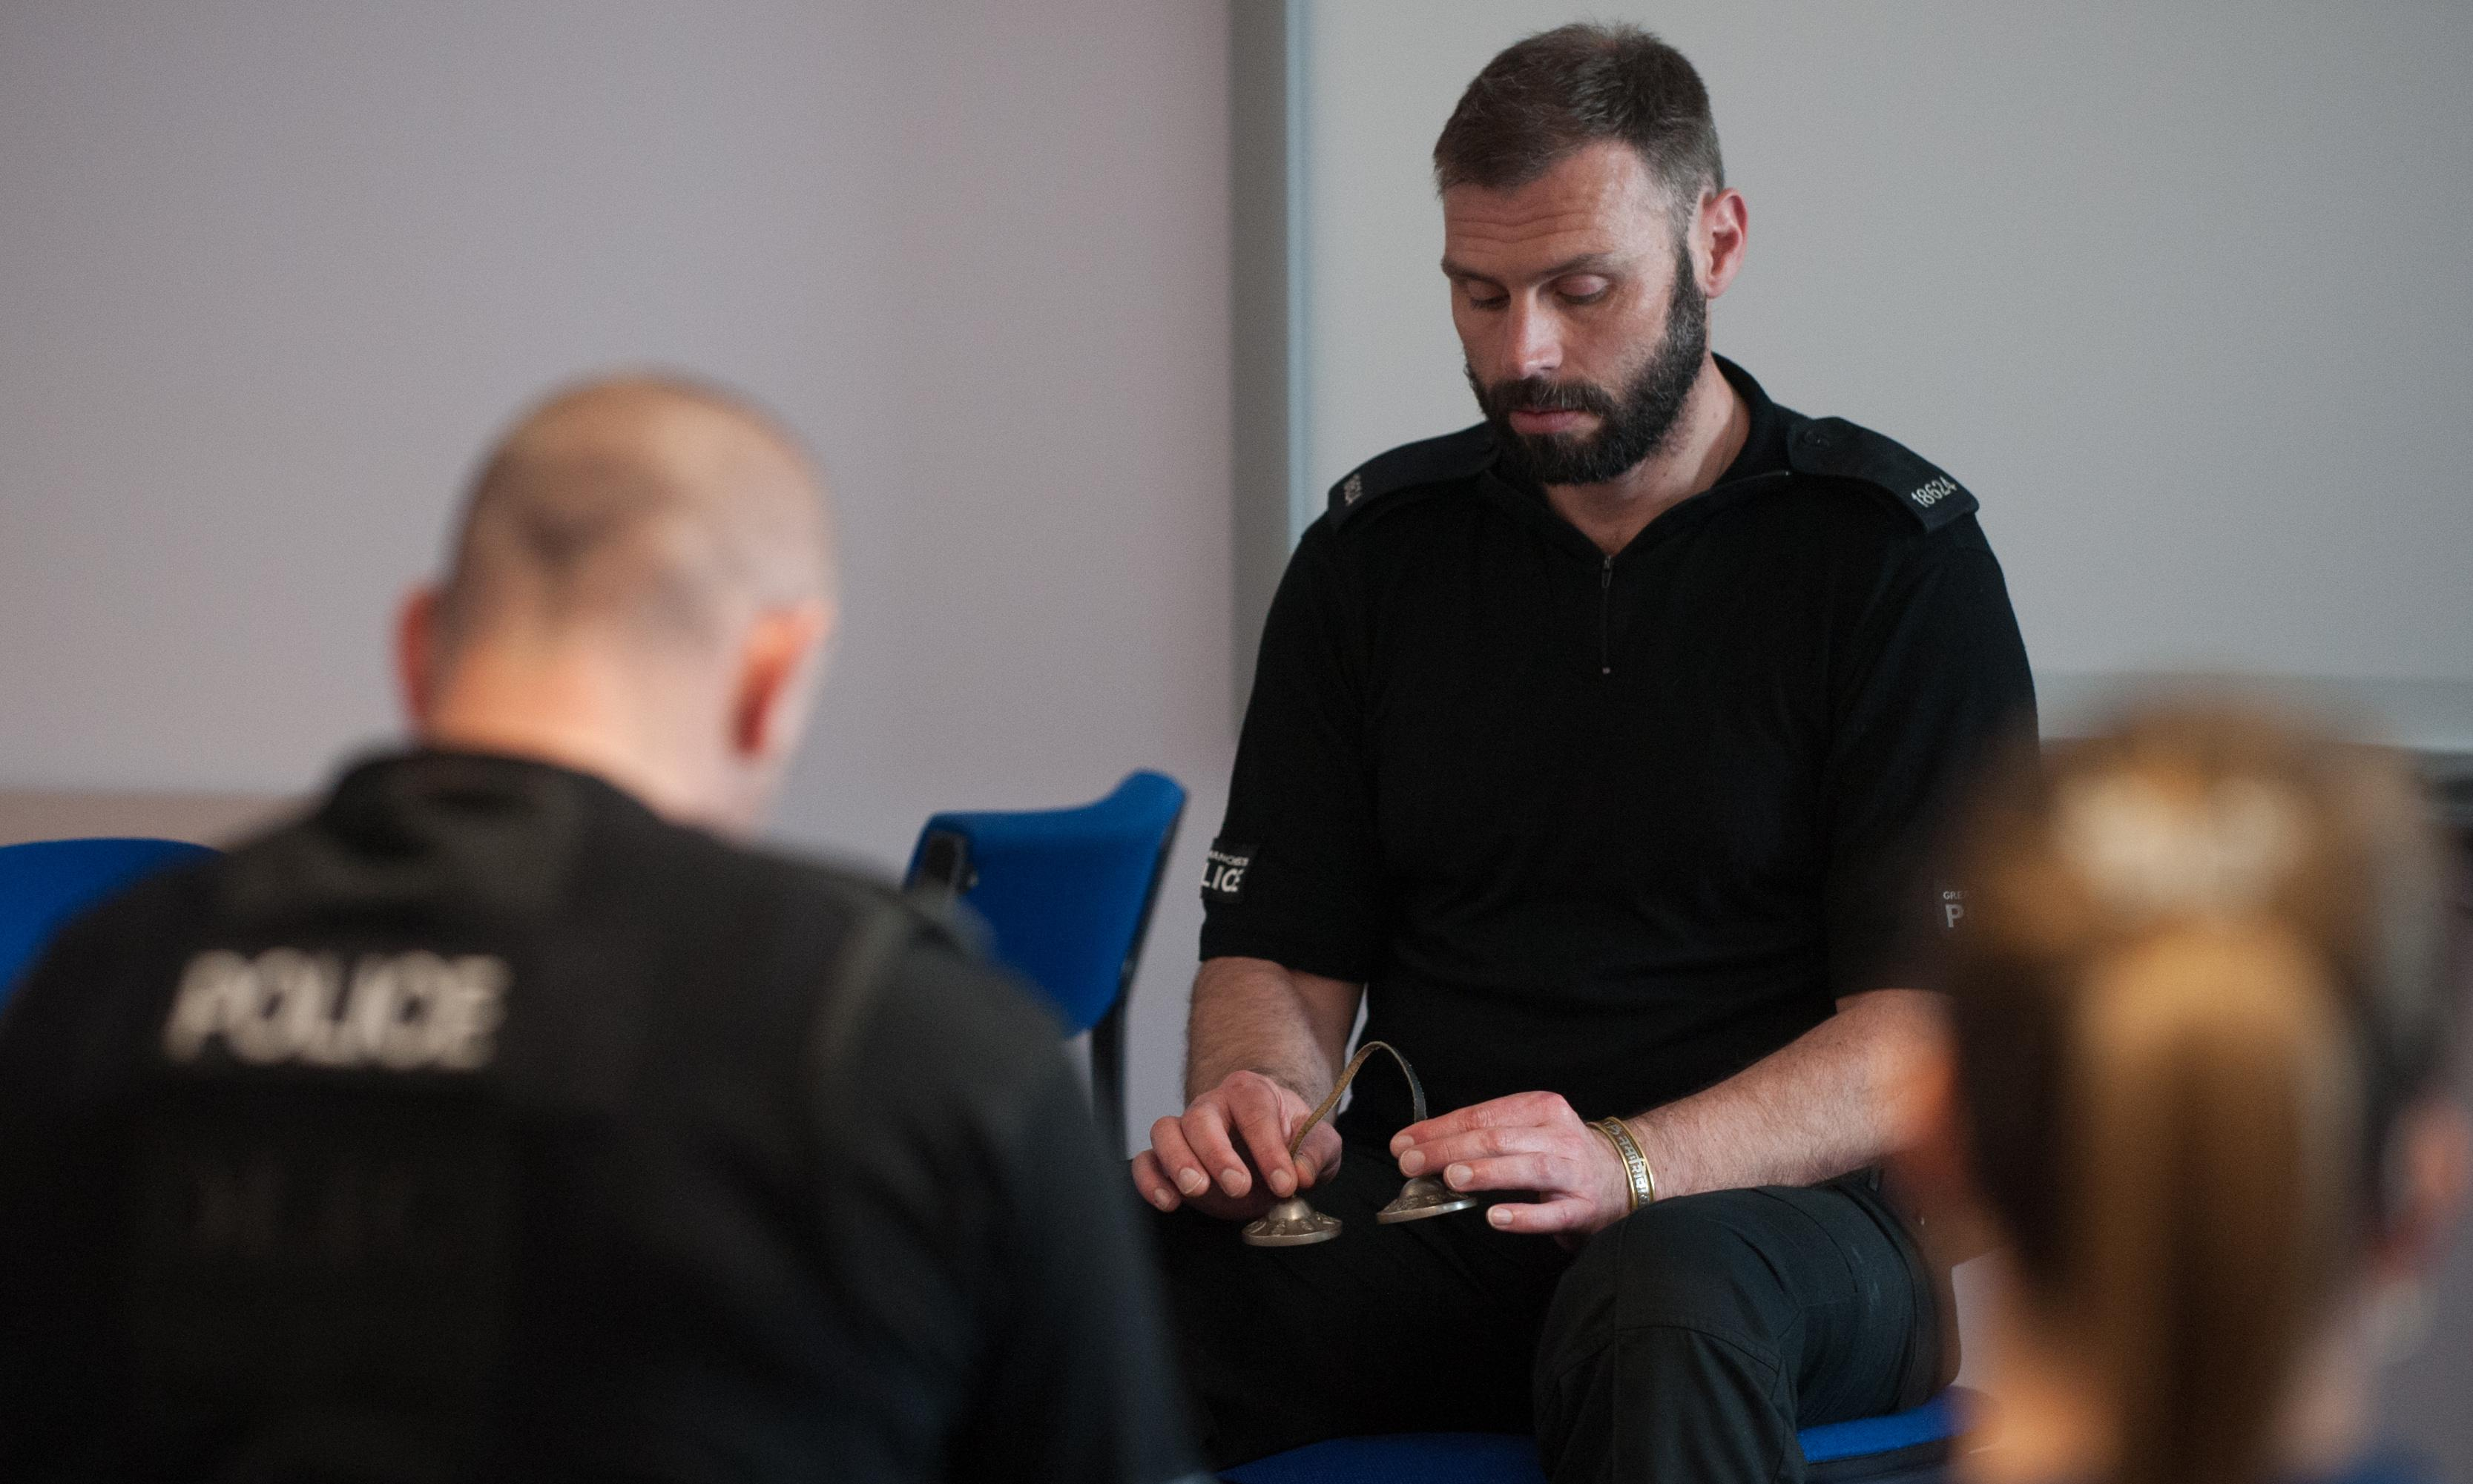 'And breathe': police try mindfulness to beat burnout